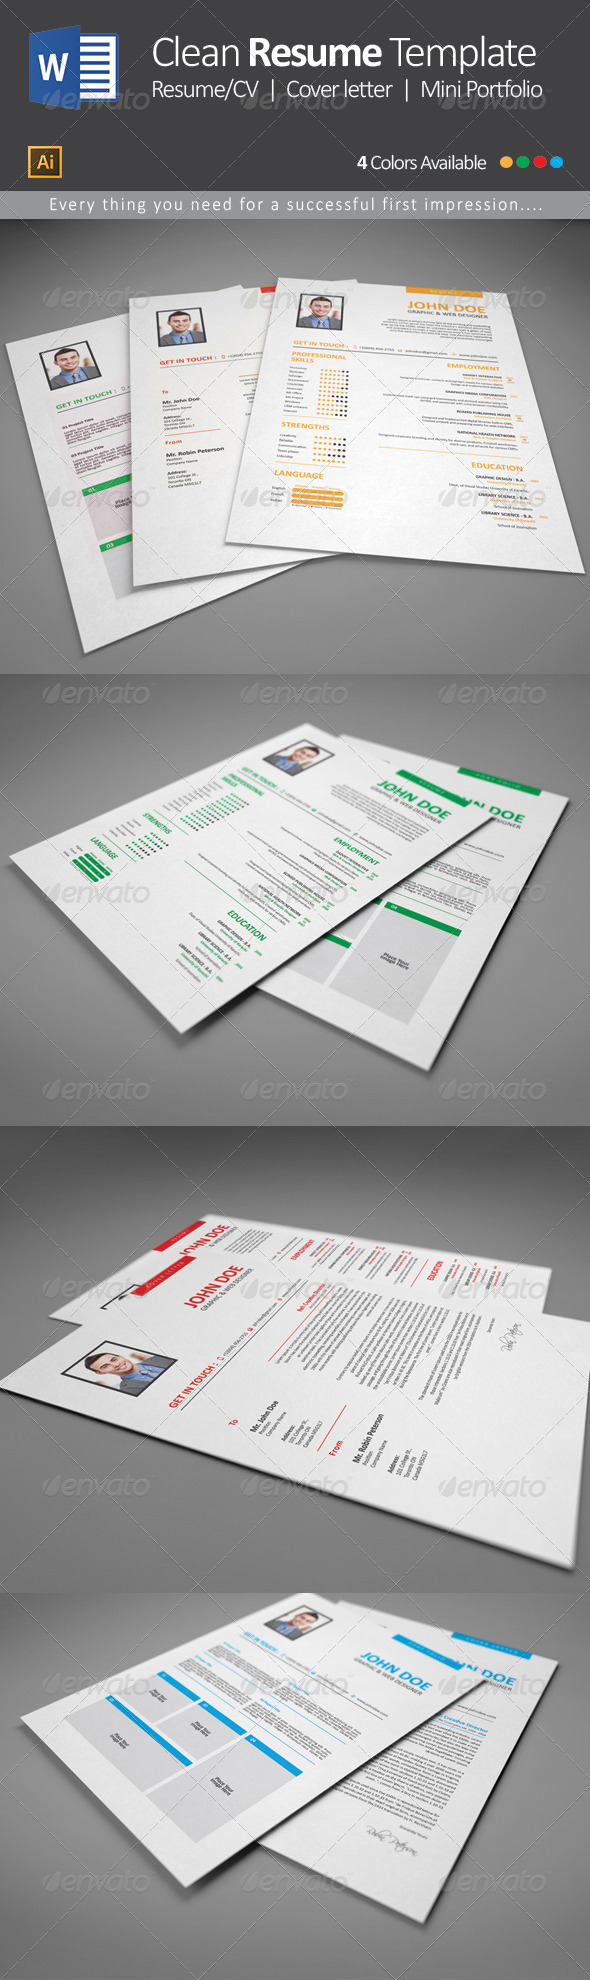 GraphicRiver Clean Resume Template 1 7961105